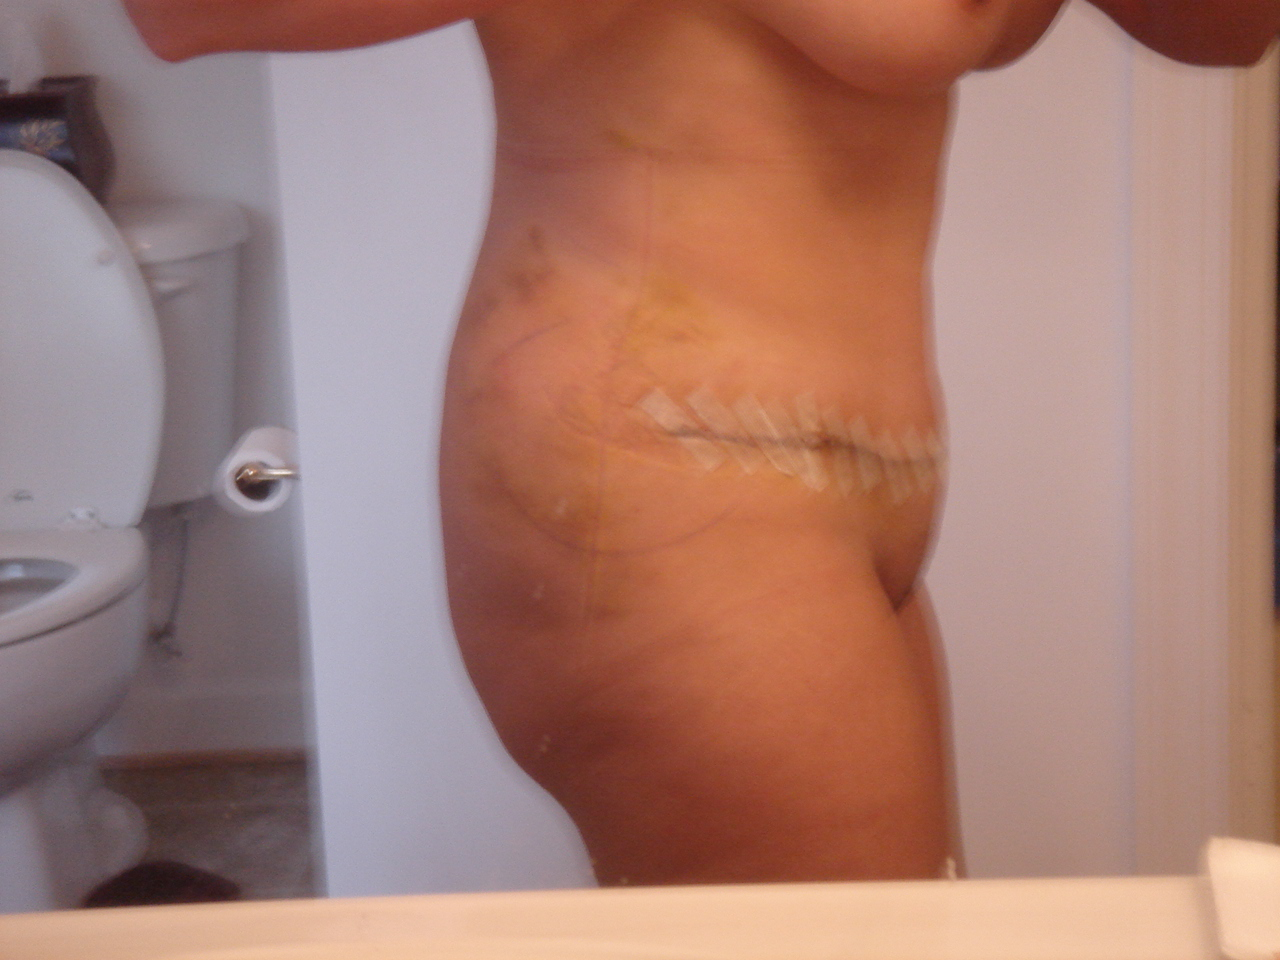 Day 5 post op side